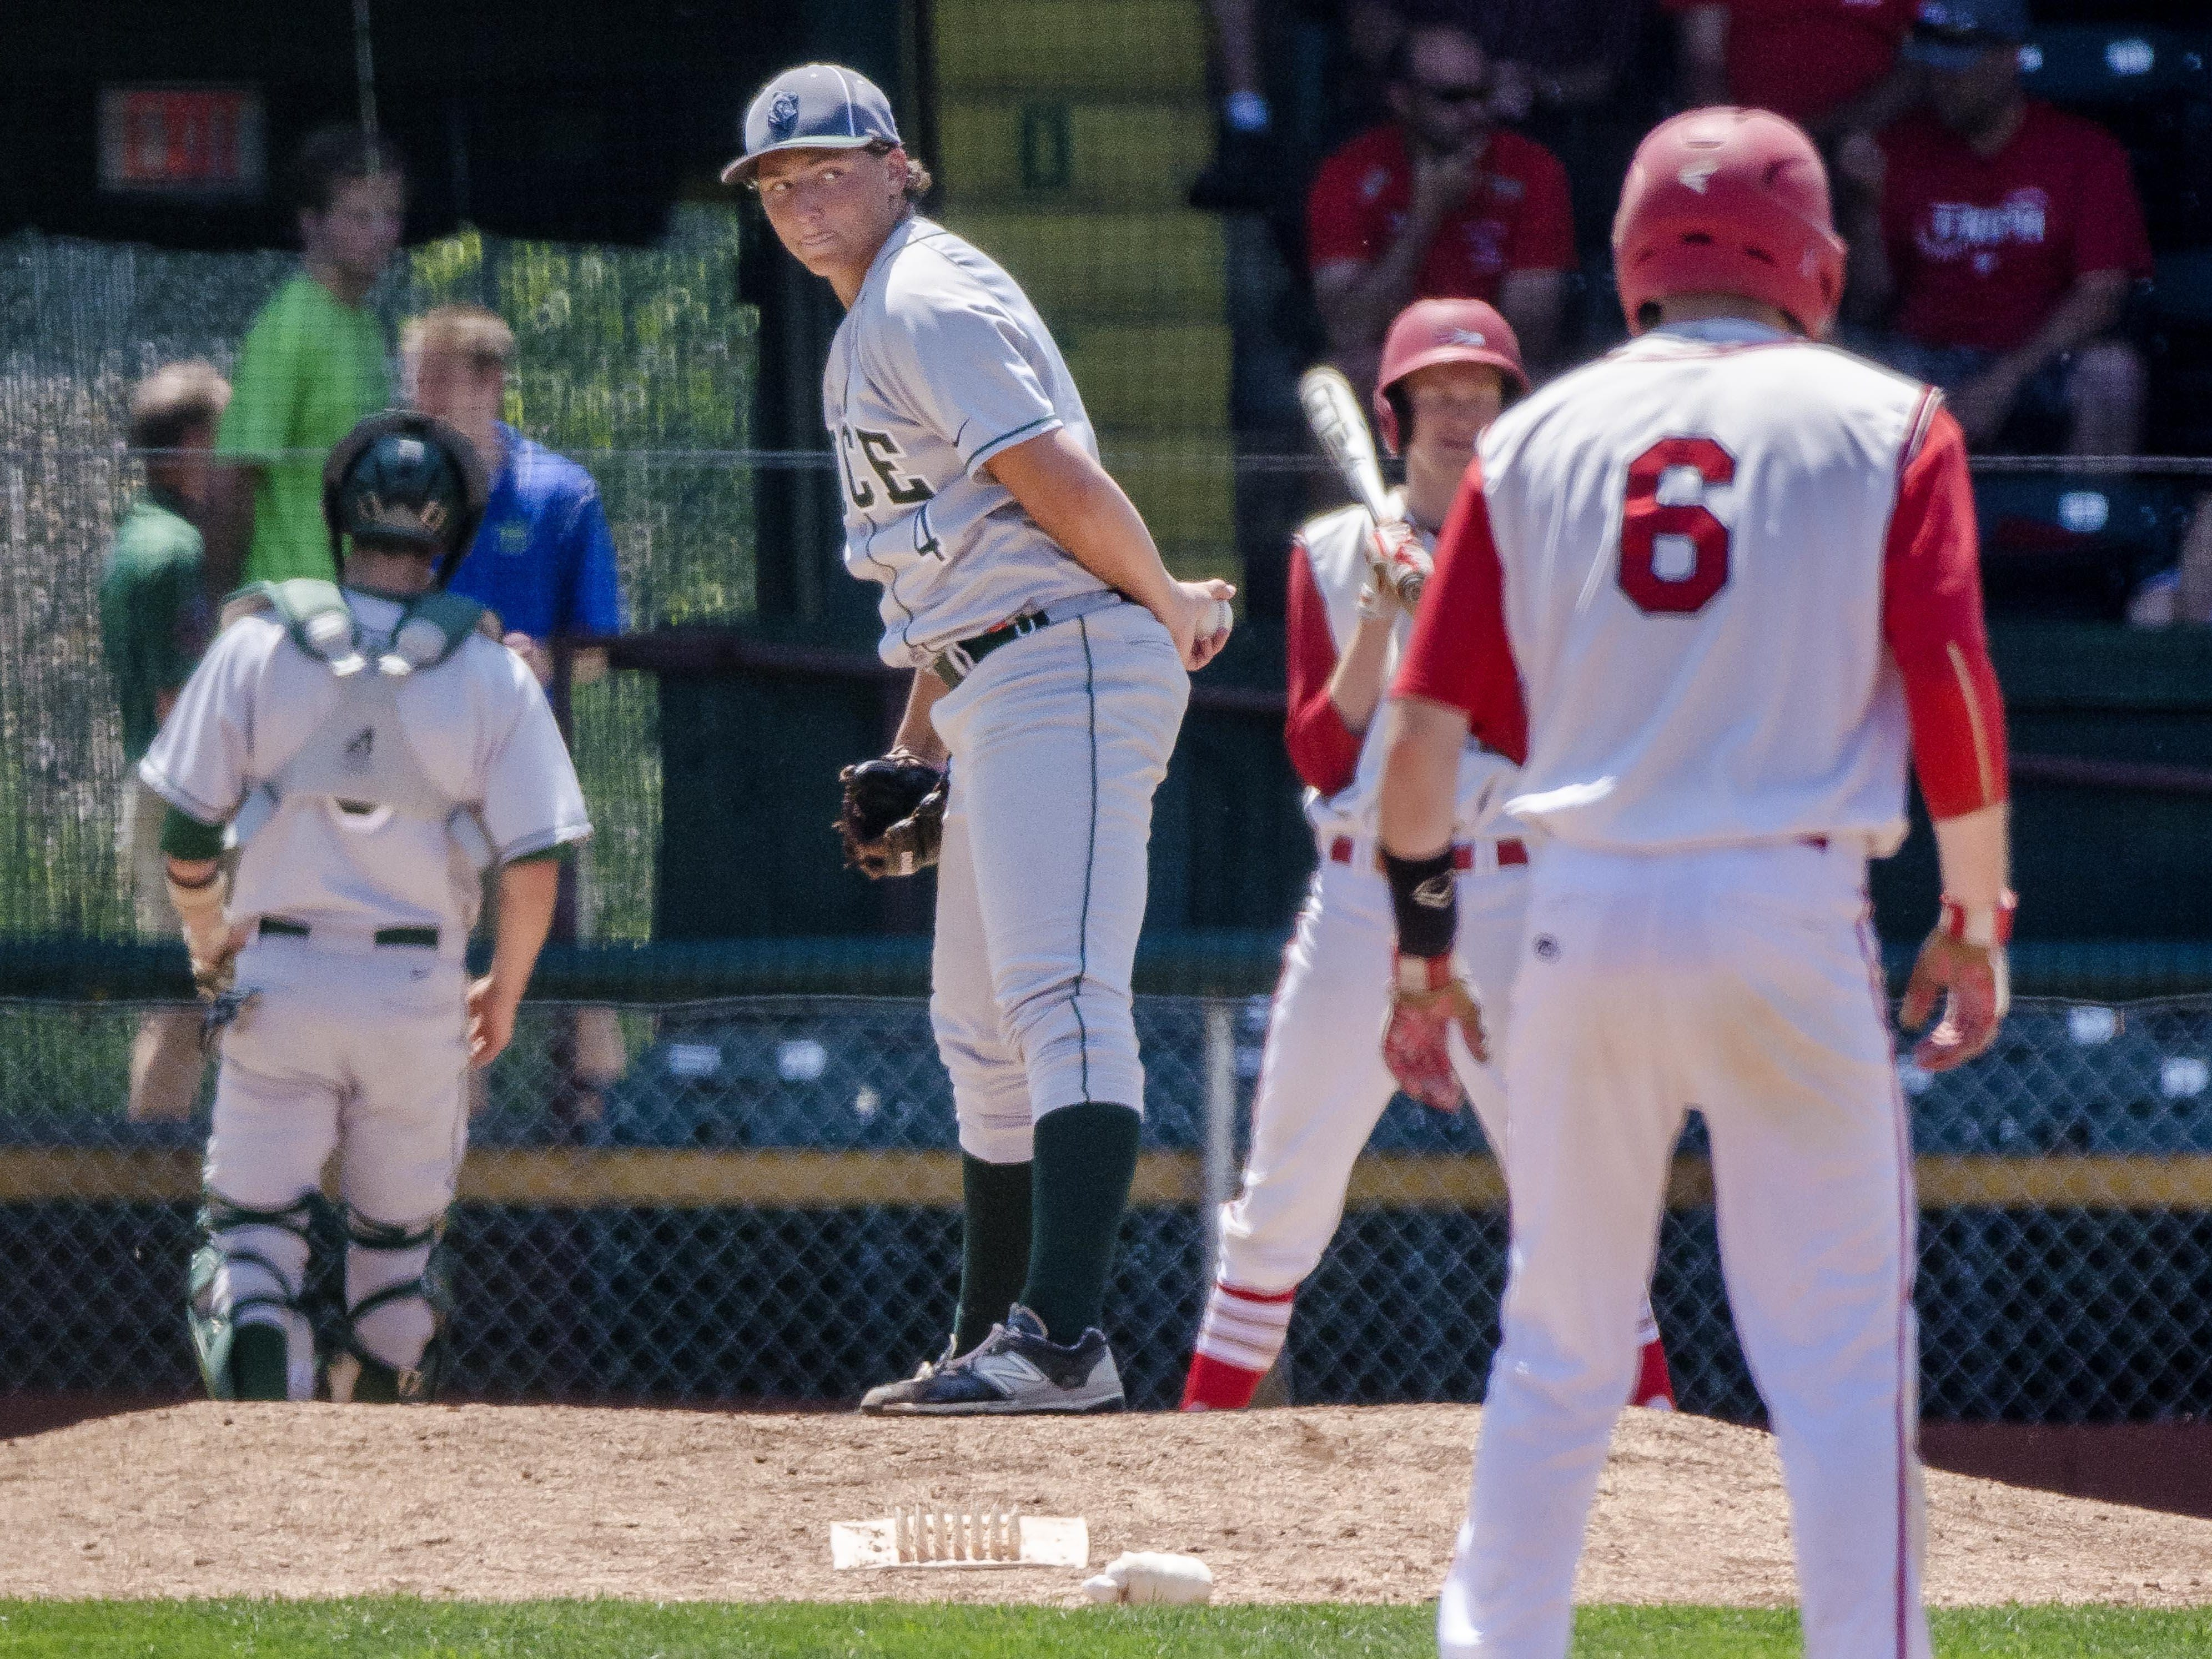 Rice's William Hesslink keeps an eye on the bases against CVU during the Division I state high school baseball championship at Centennial Field in Burlington on Saturday, June 13, 2015.